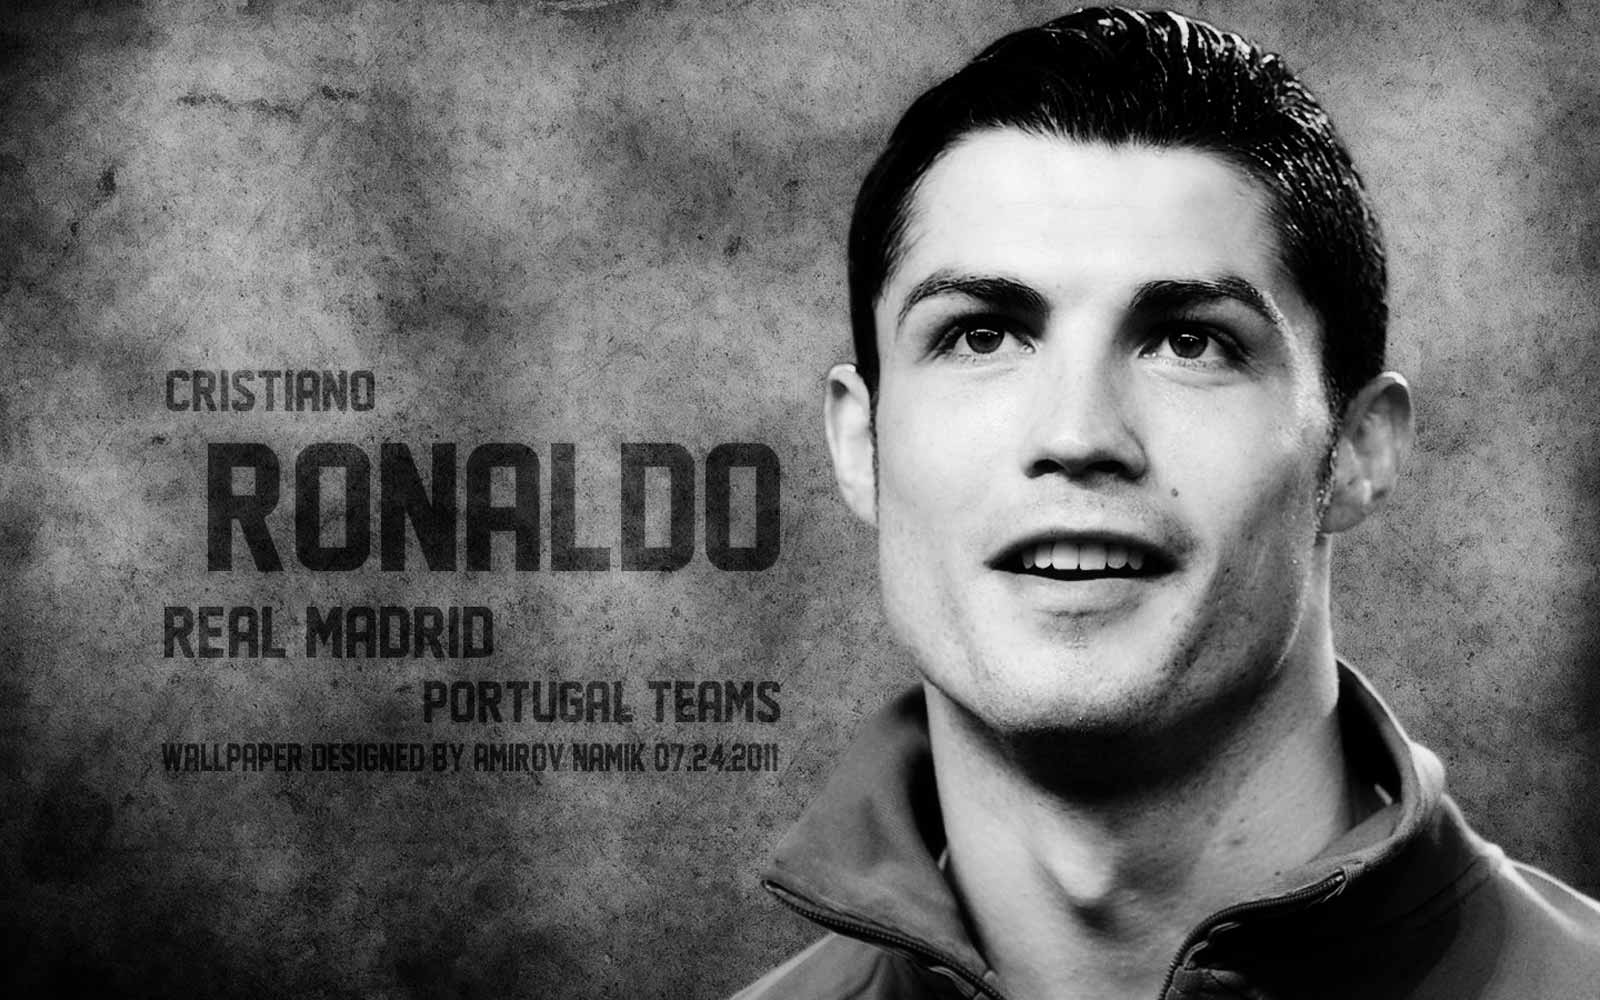 Cristiano Ronaldo Real Madrid HD Wallpaper